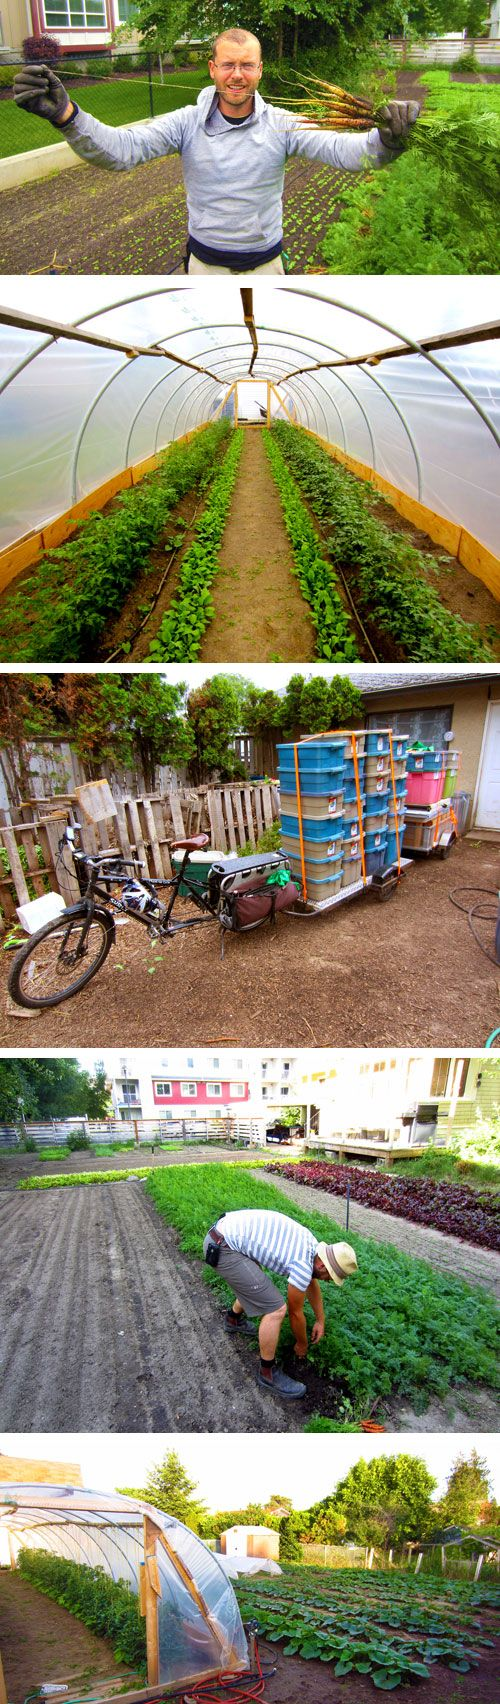 Green City Acres, SPIN Method, path to profit for small urban farming